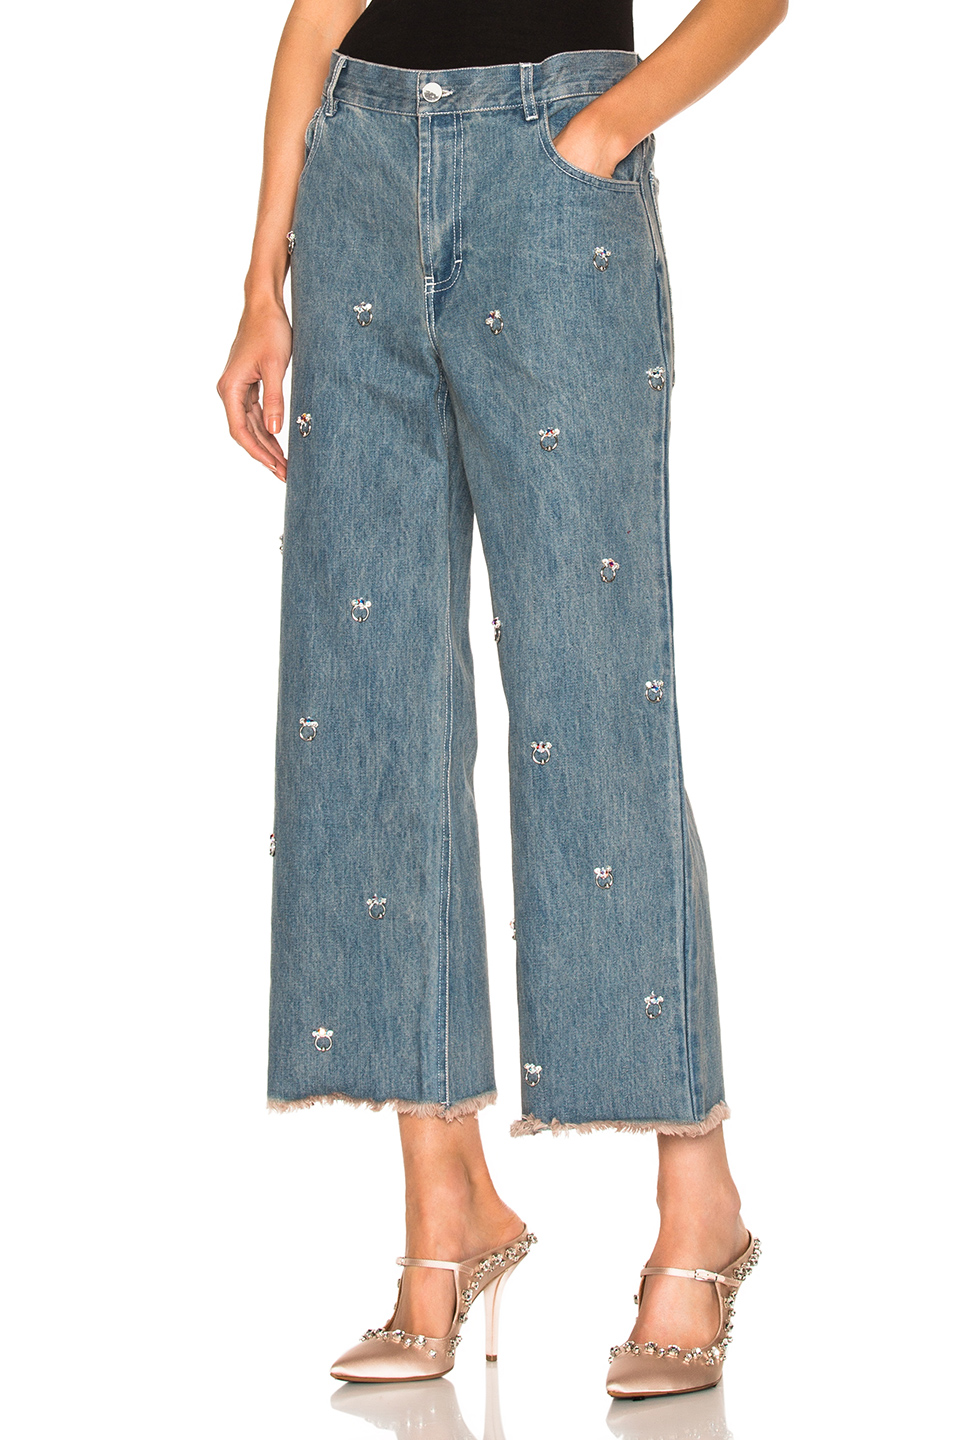 SANDY LIANG GHOST EMBELLISHED JEANS, BLUEBERRY